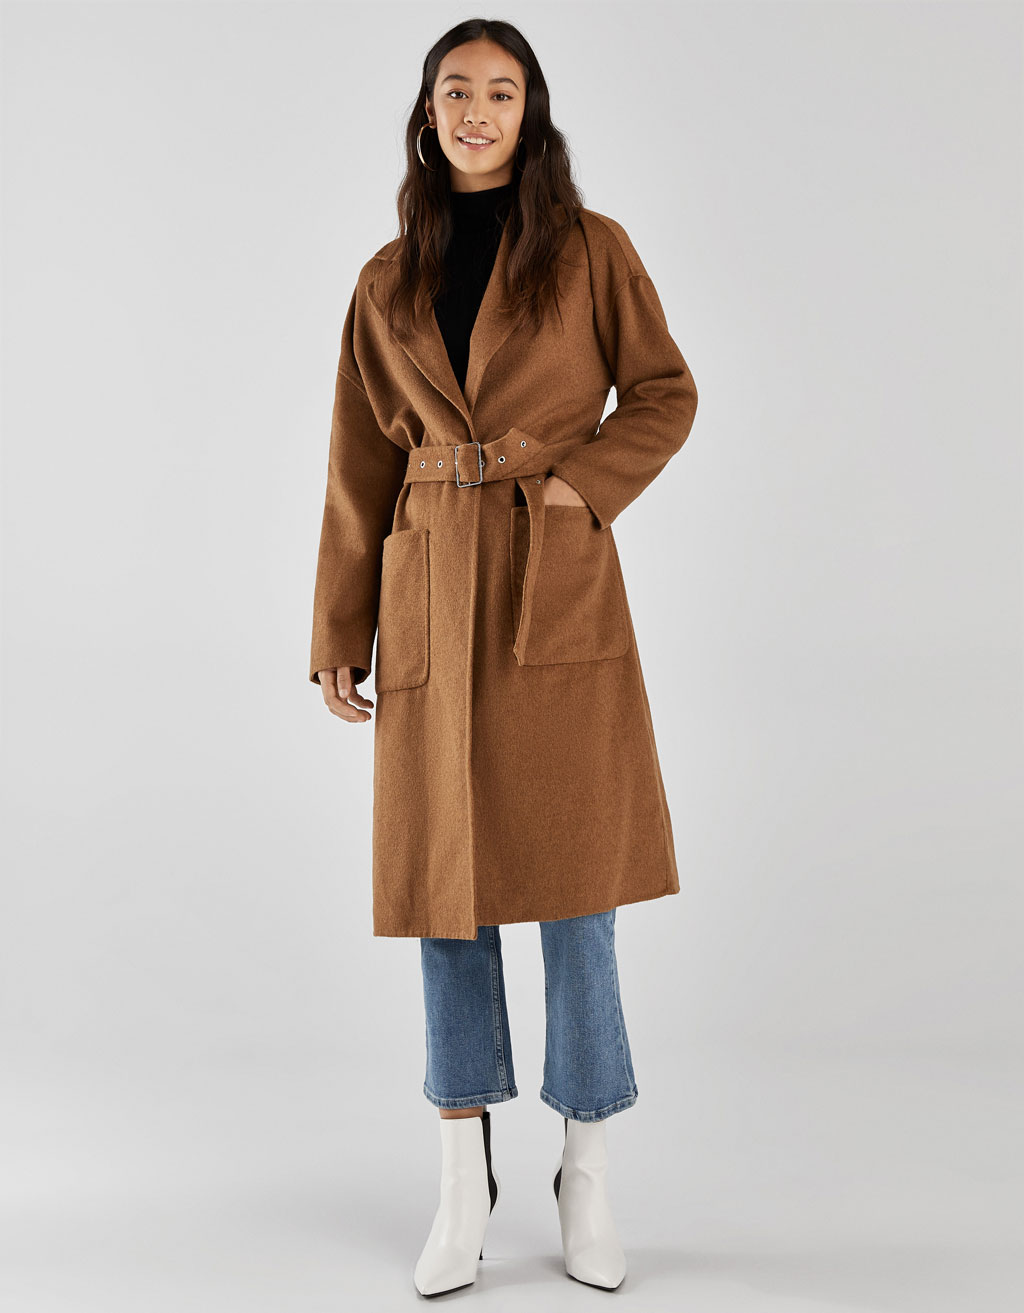 Long handmade wool coat